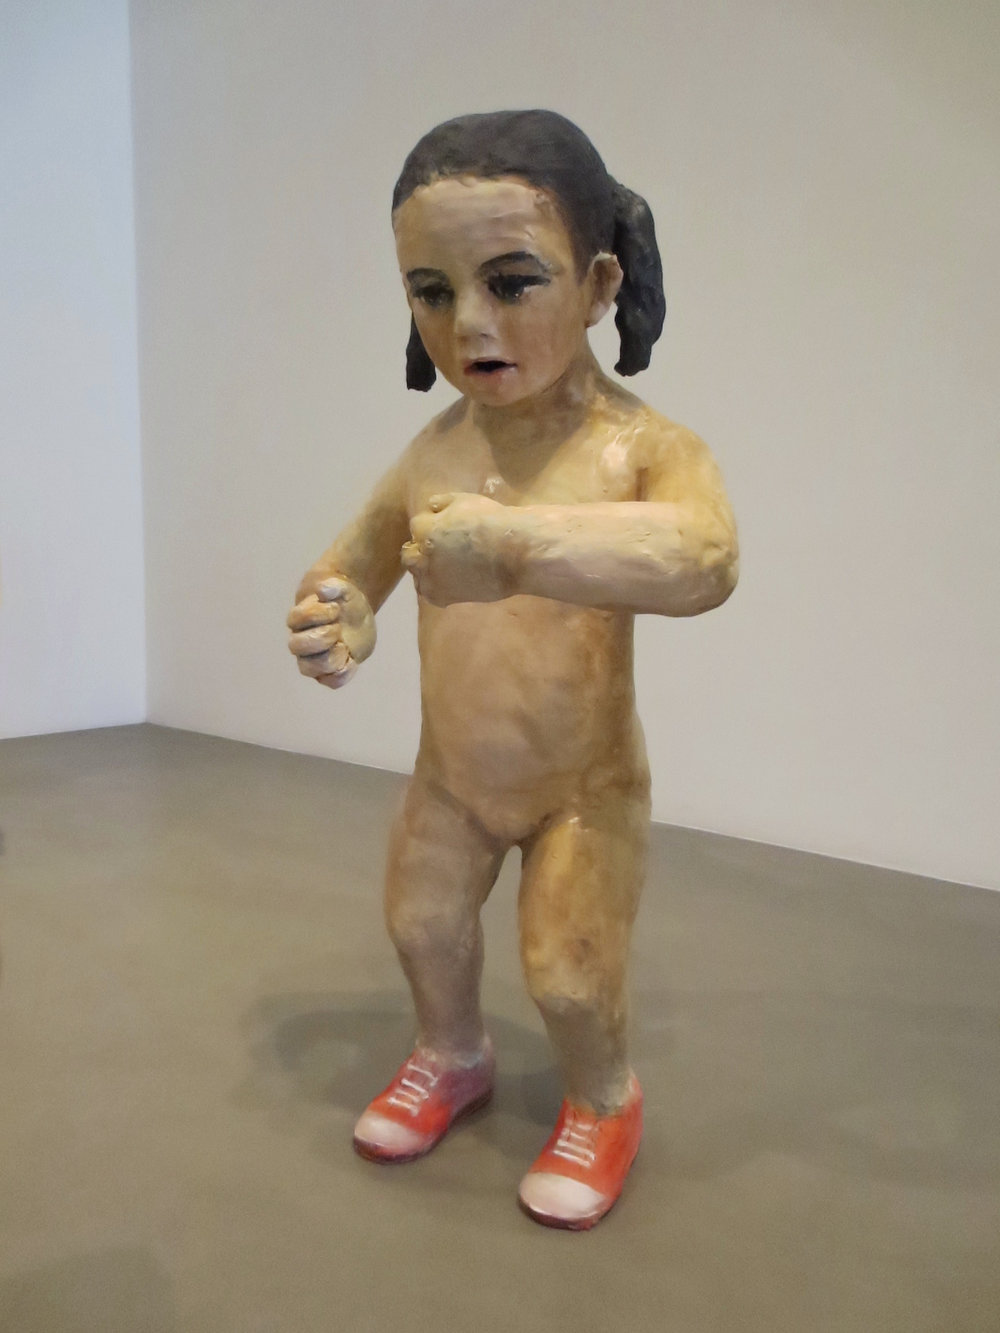 Pendiencia, (Bully 1), 2012, Glazed ceramic, 31 X 17 X 13 in.